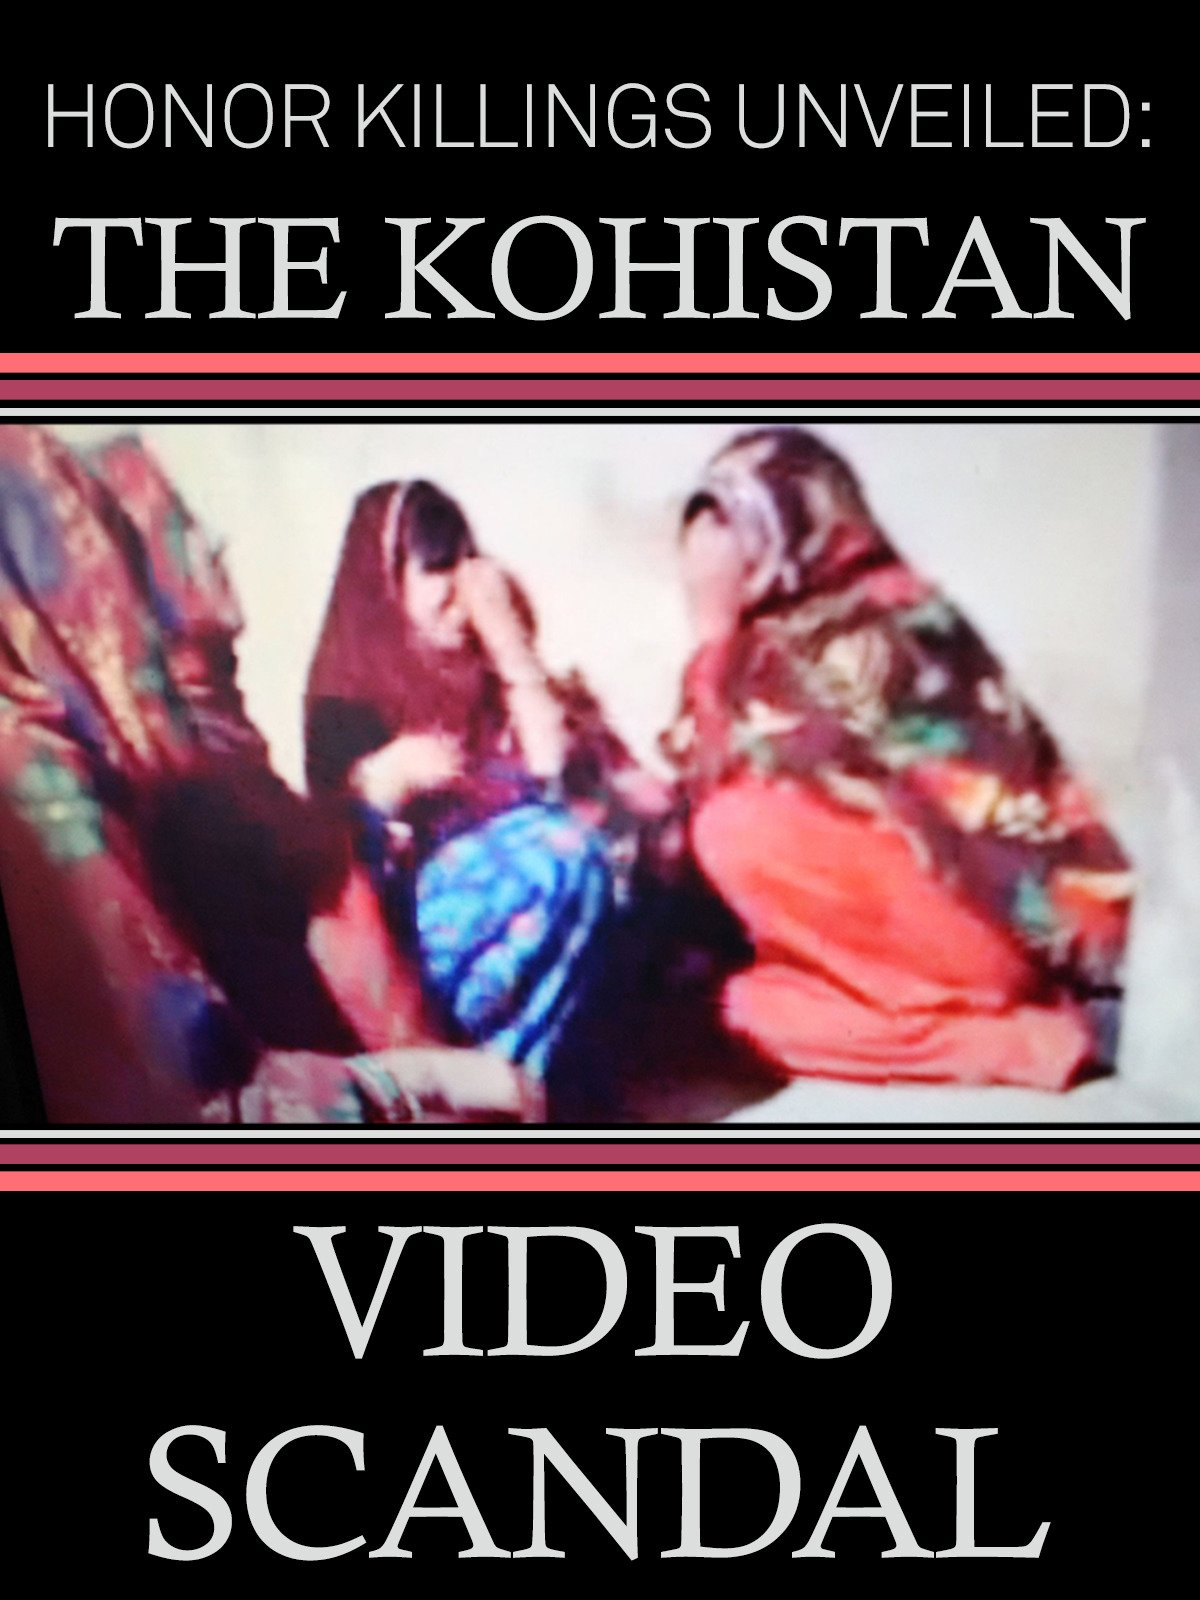 Honor Killings Unveiled: The Kohistan Video Scandal